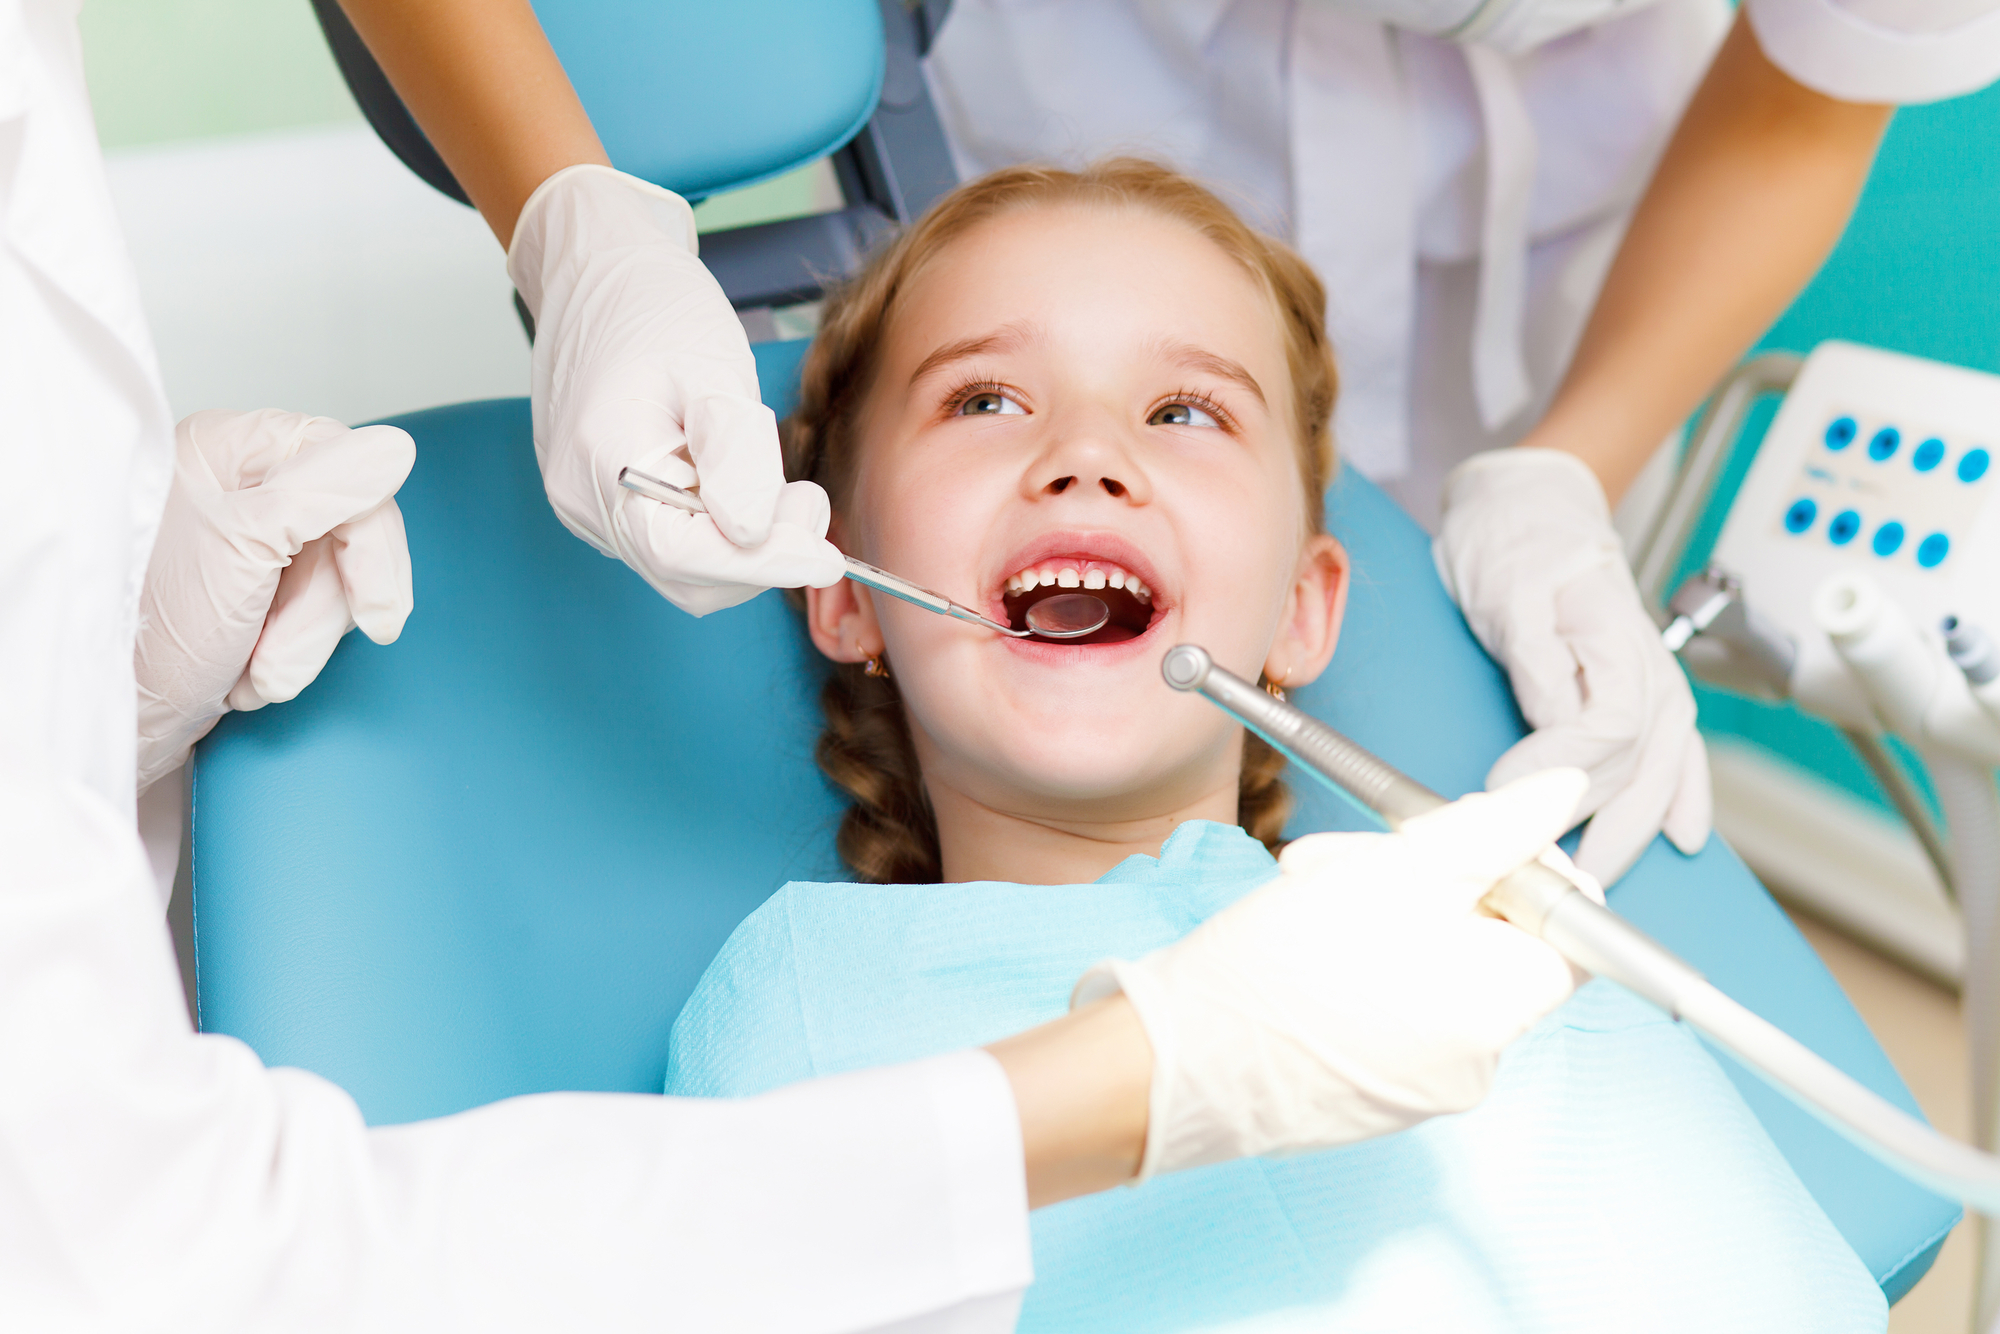 who offers the best family dentistry simpsonville sc?